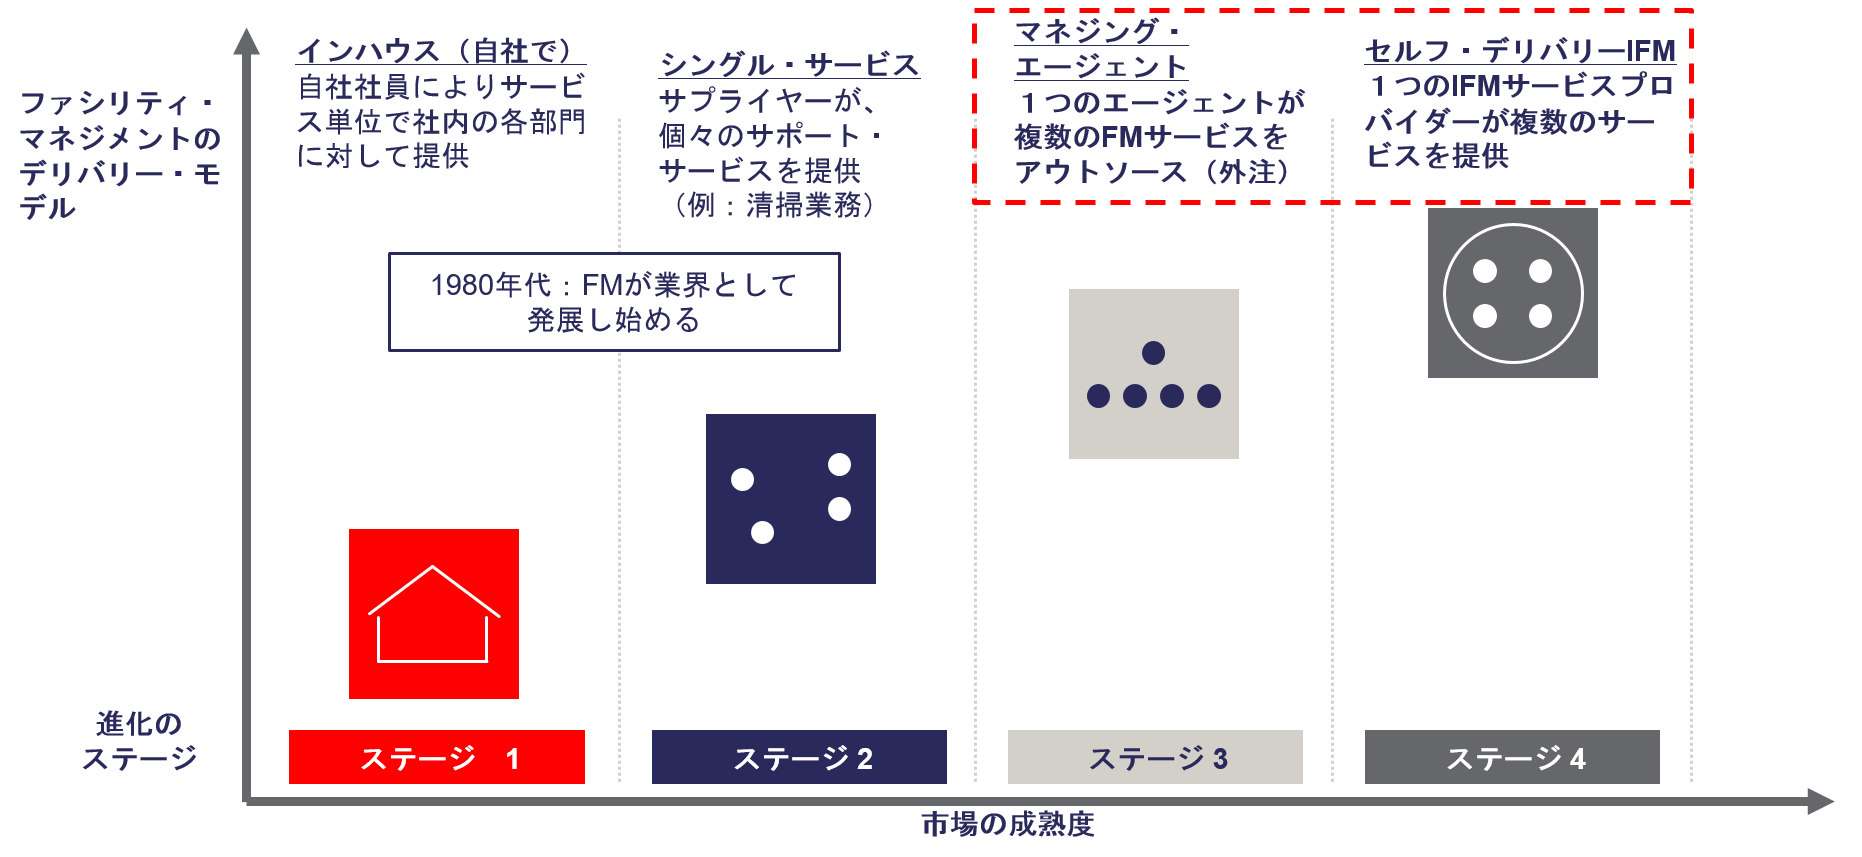 GSS18_Evolution_of_FM_Industry_JP.png